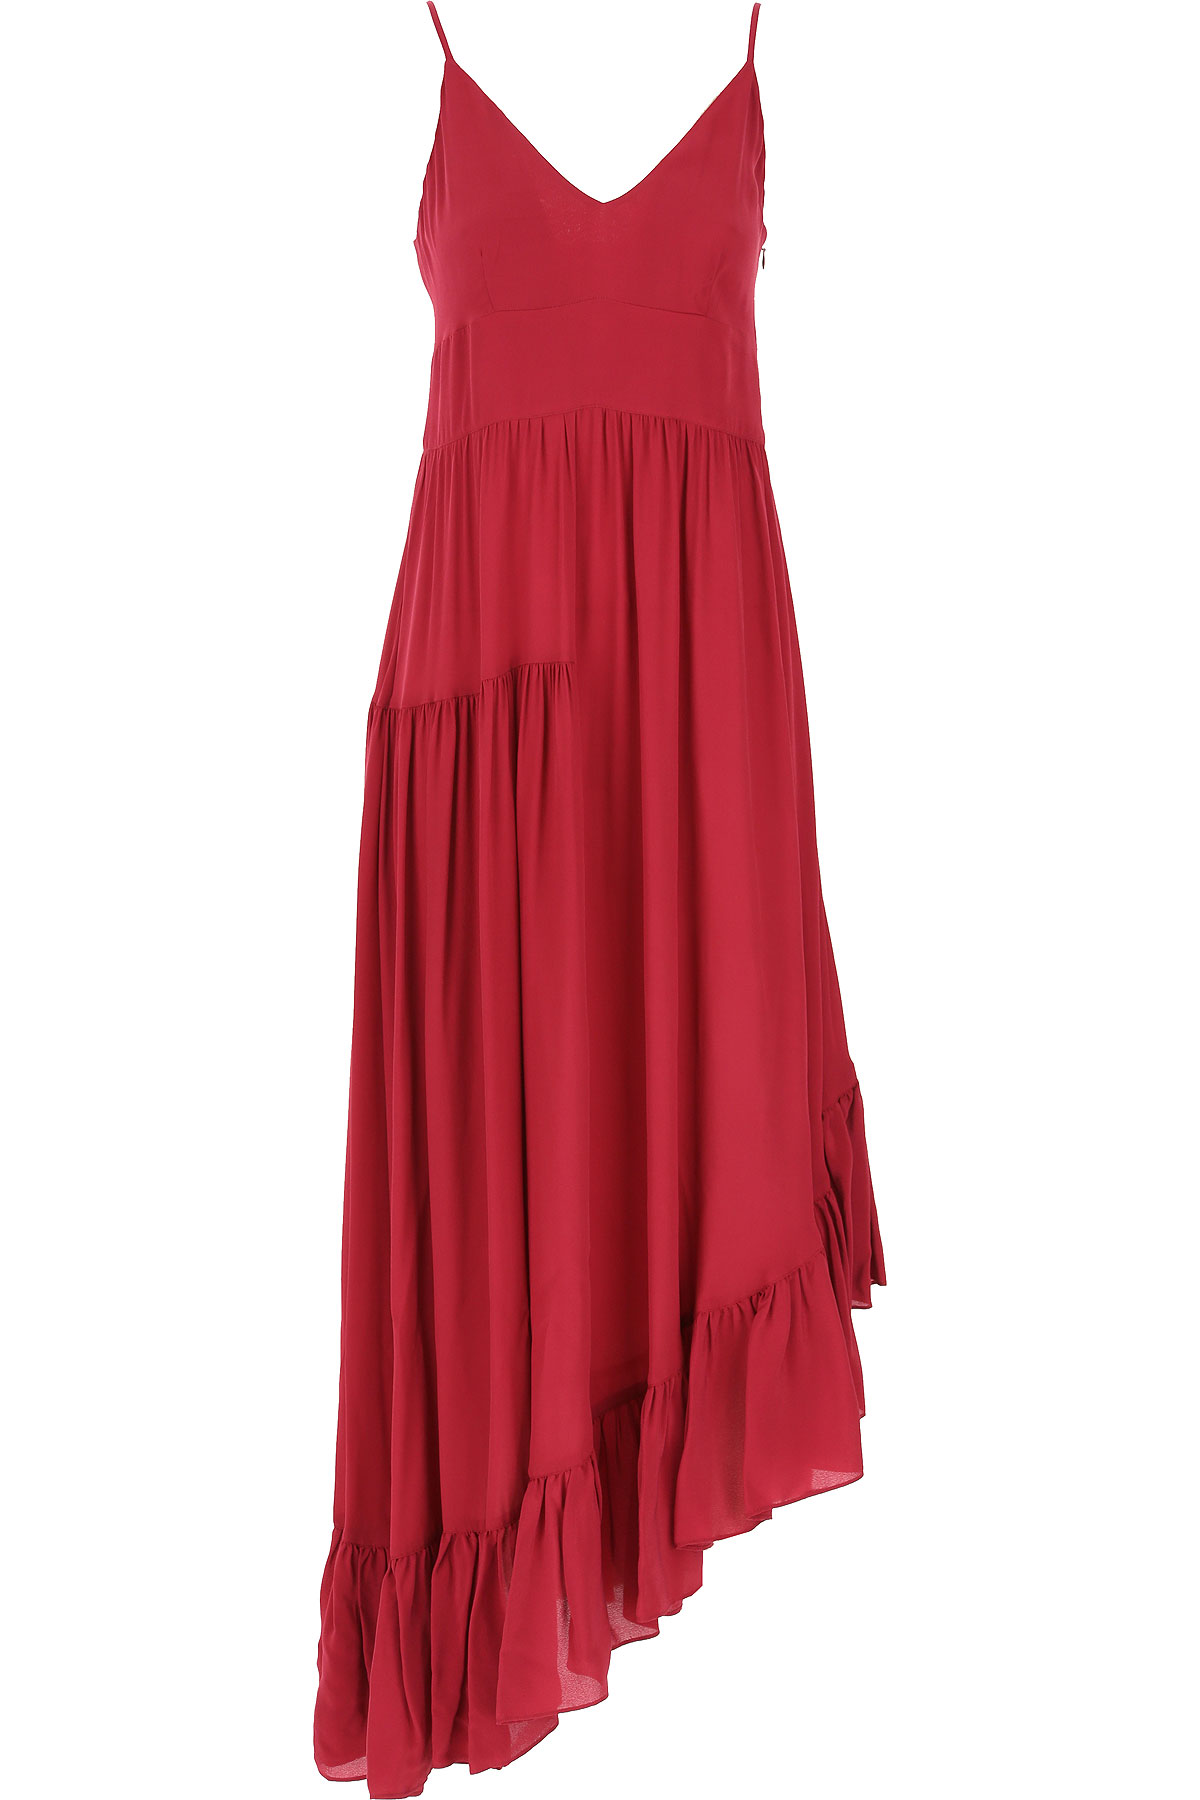 Twin Set by Simona Barbieri Dress for Women, Evening Cocktail Party On Sale, Beet Red, Viscose, 2019, 1 (S - 40/42) 3 (L - 44/46) 4 (XL - 46/48)